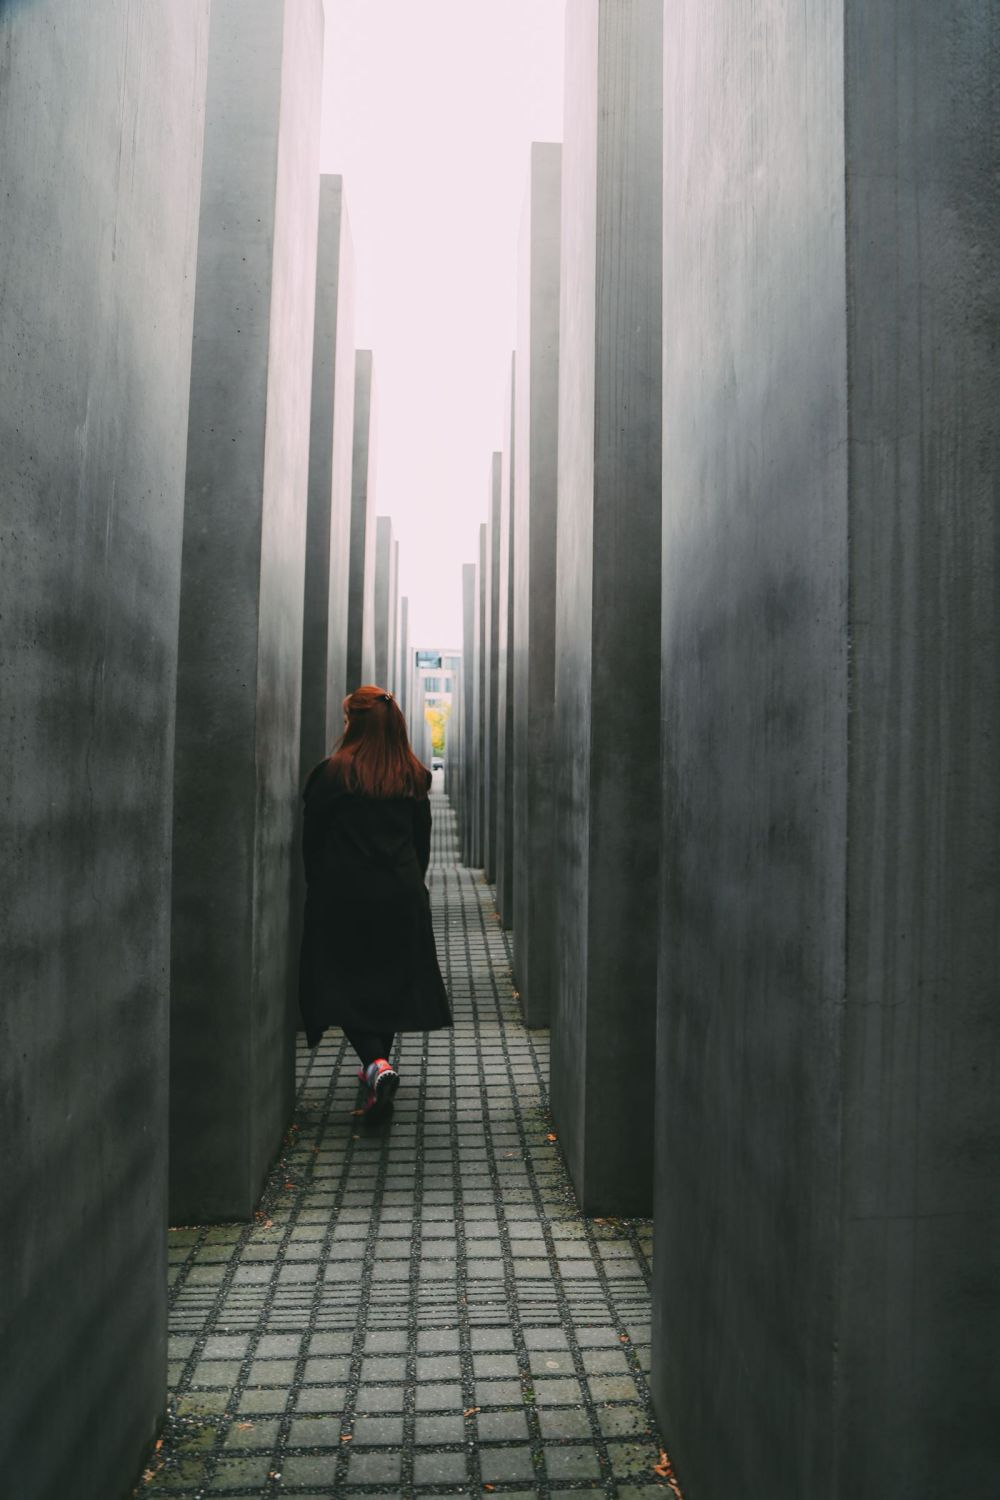 A Memoir To The Fallen - The Holocaust Memorial Also known as the Memorial to the Murdered Jews of Europe (3)